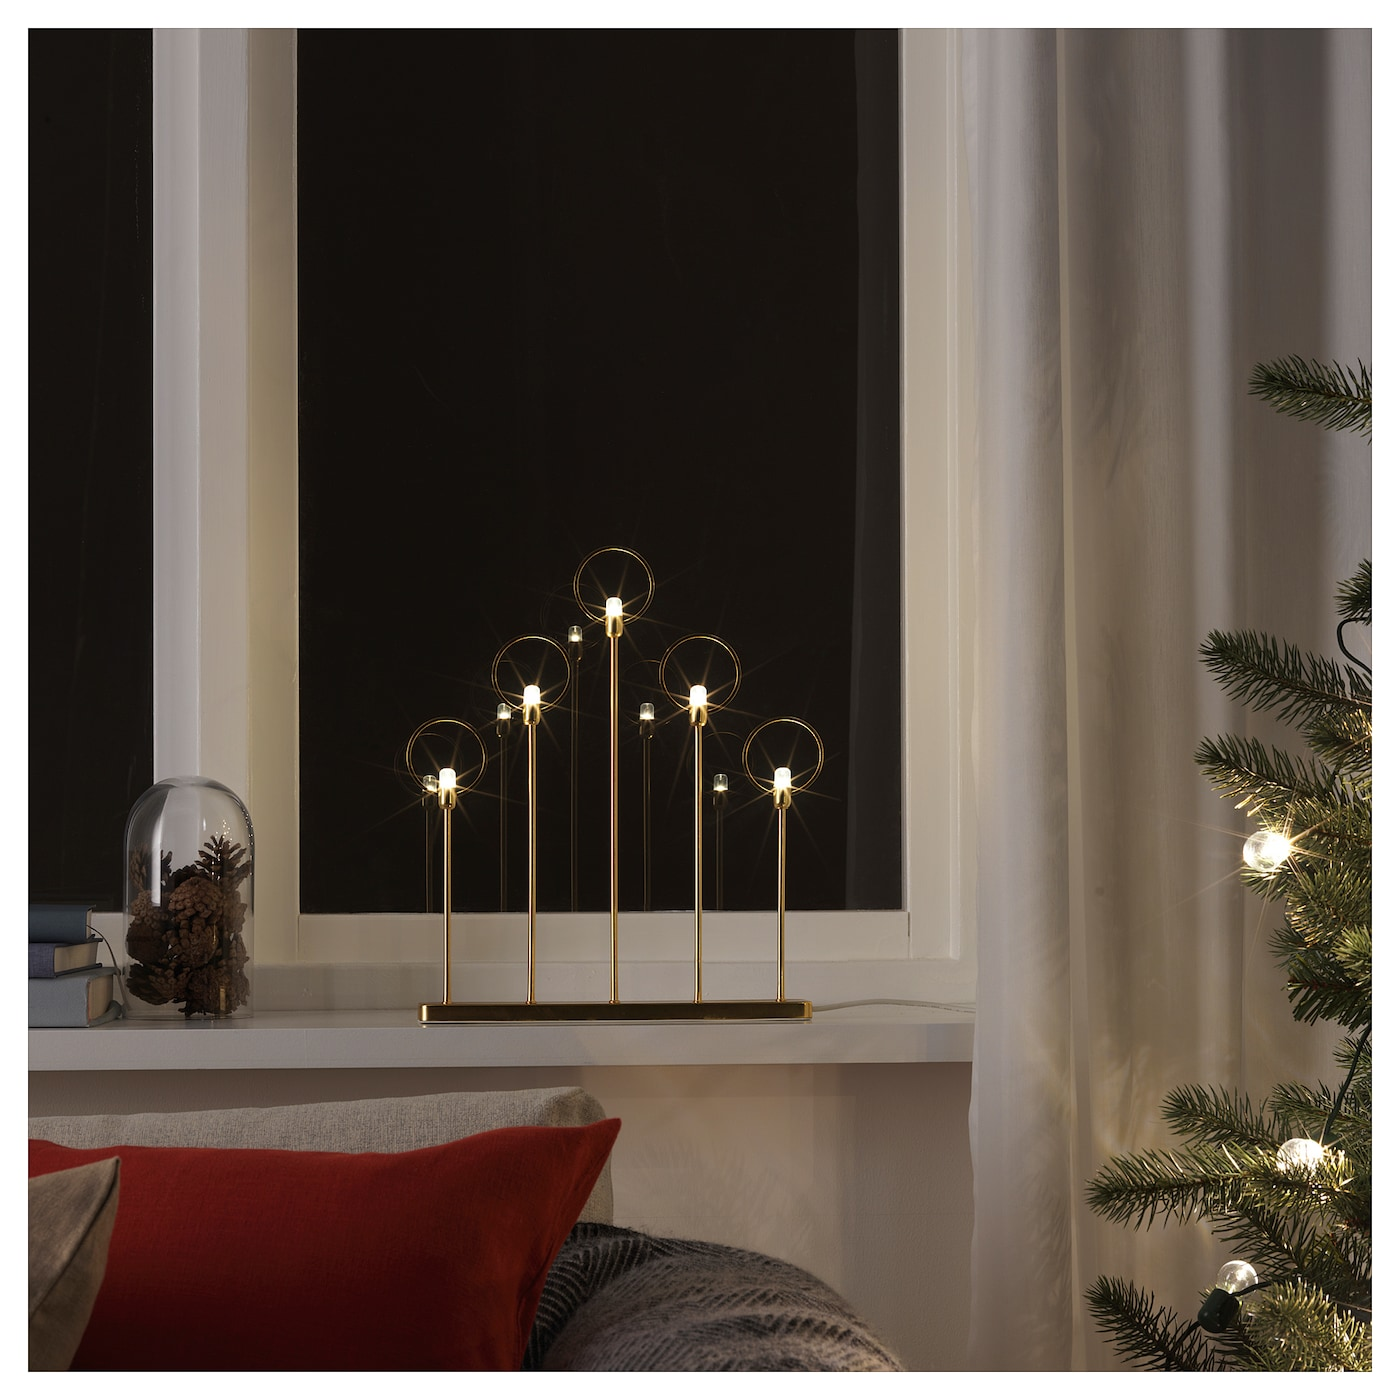 decorative lighting, shades & led candles | ikea